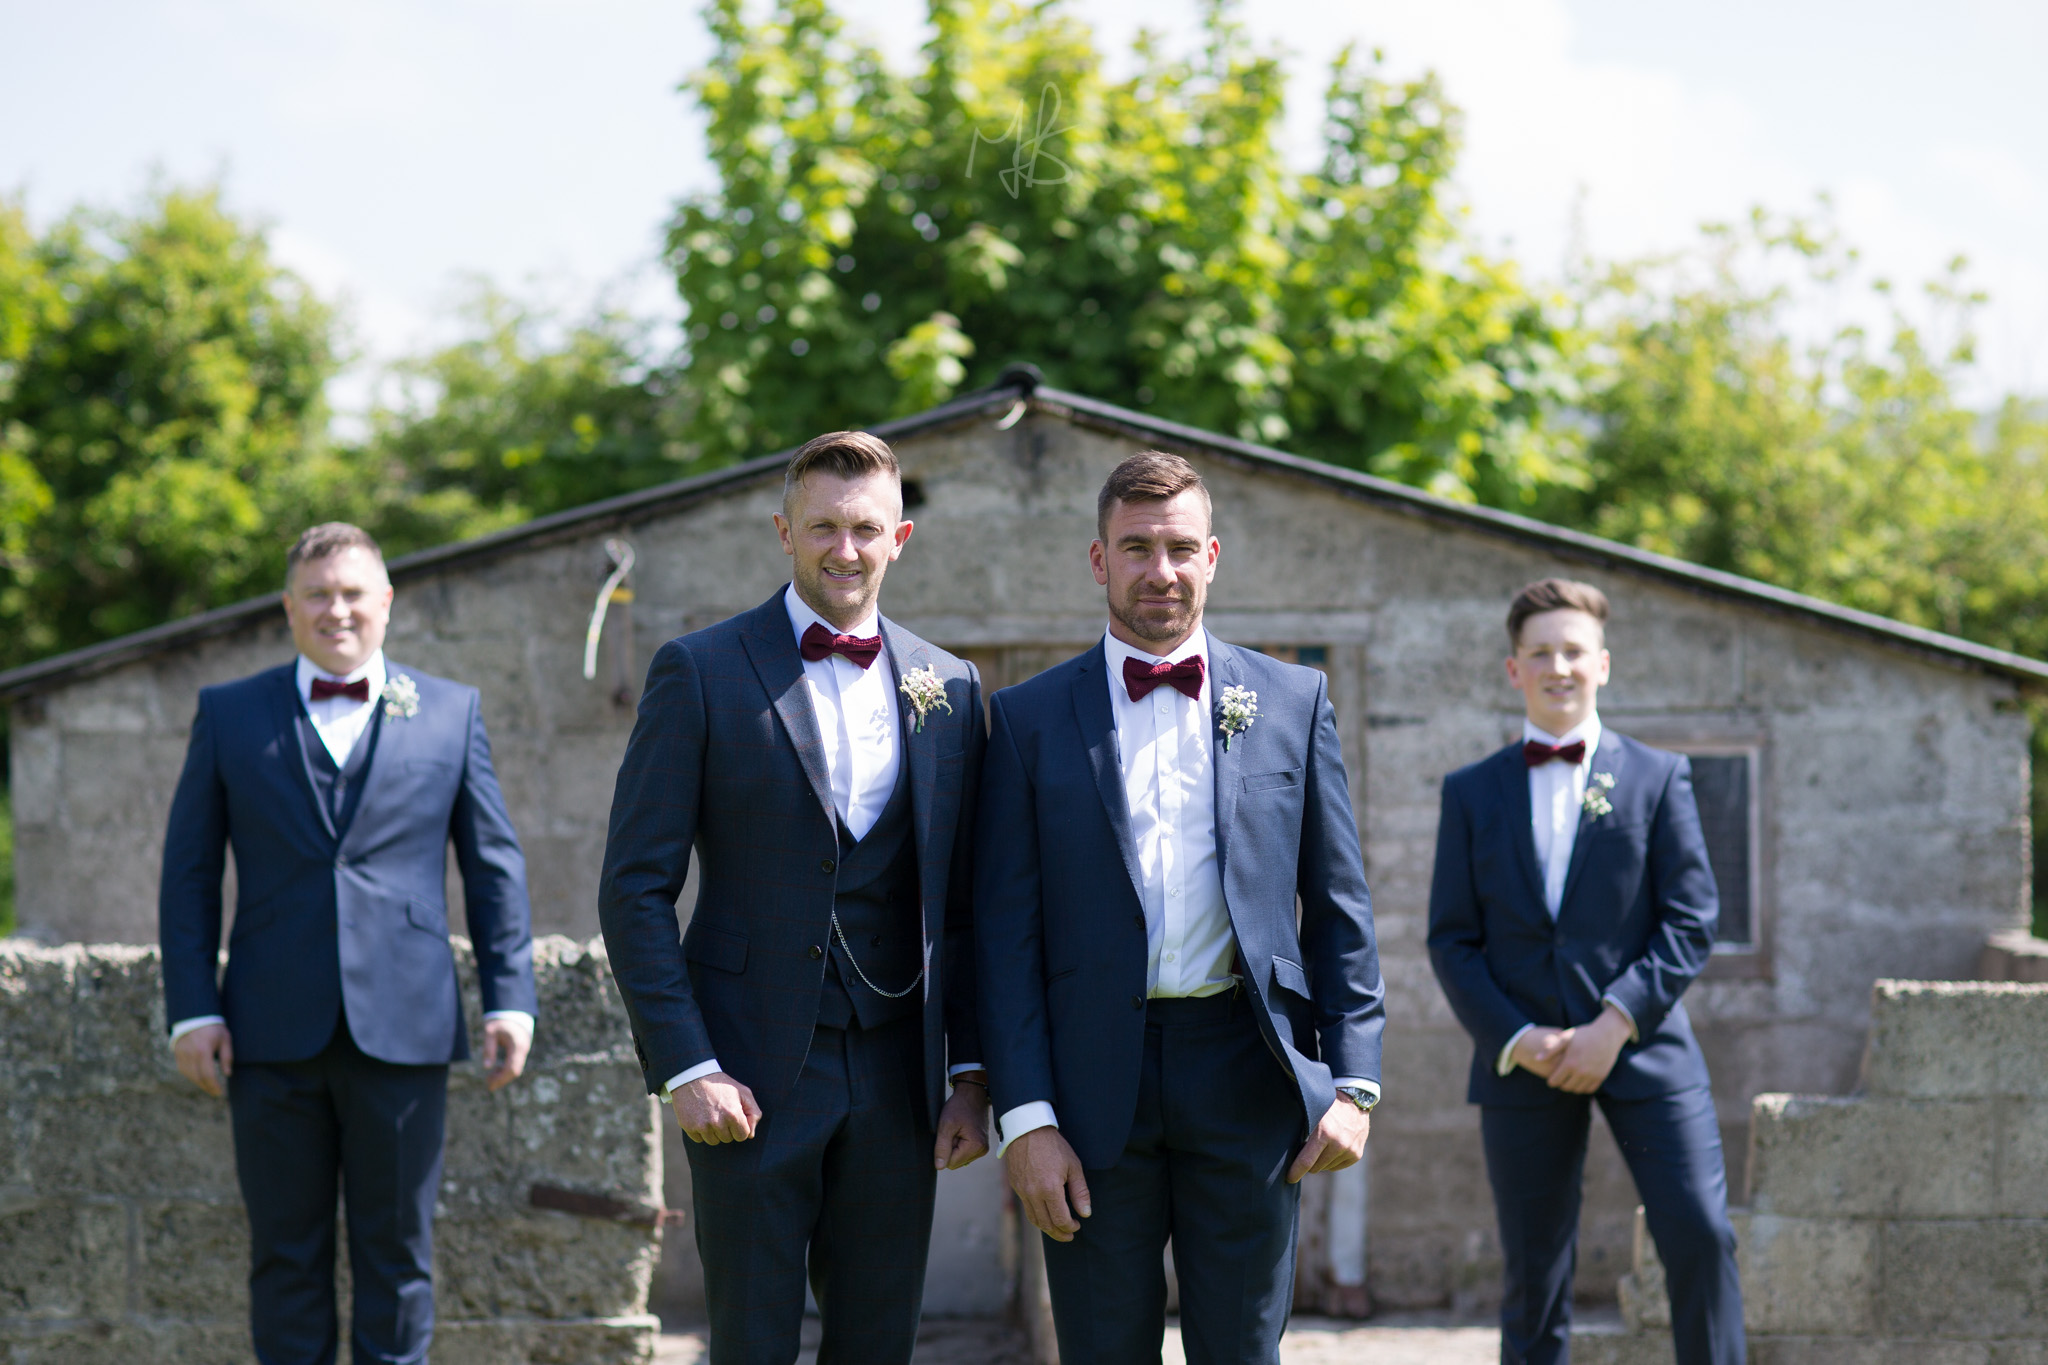 Northern_Ireland_Wedding-Photographer-Mark-Barnes-Newry_wedding_Photography-Katie&Darren-47.jpg